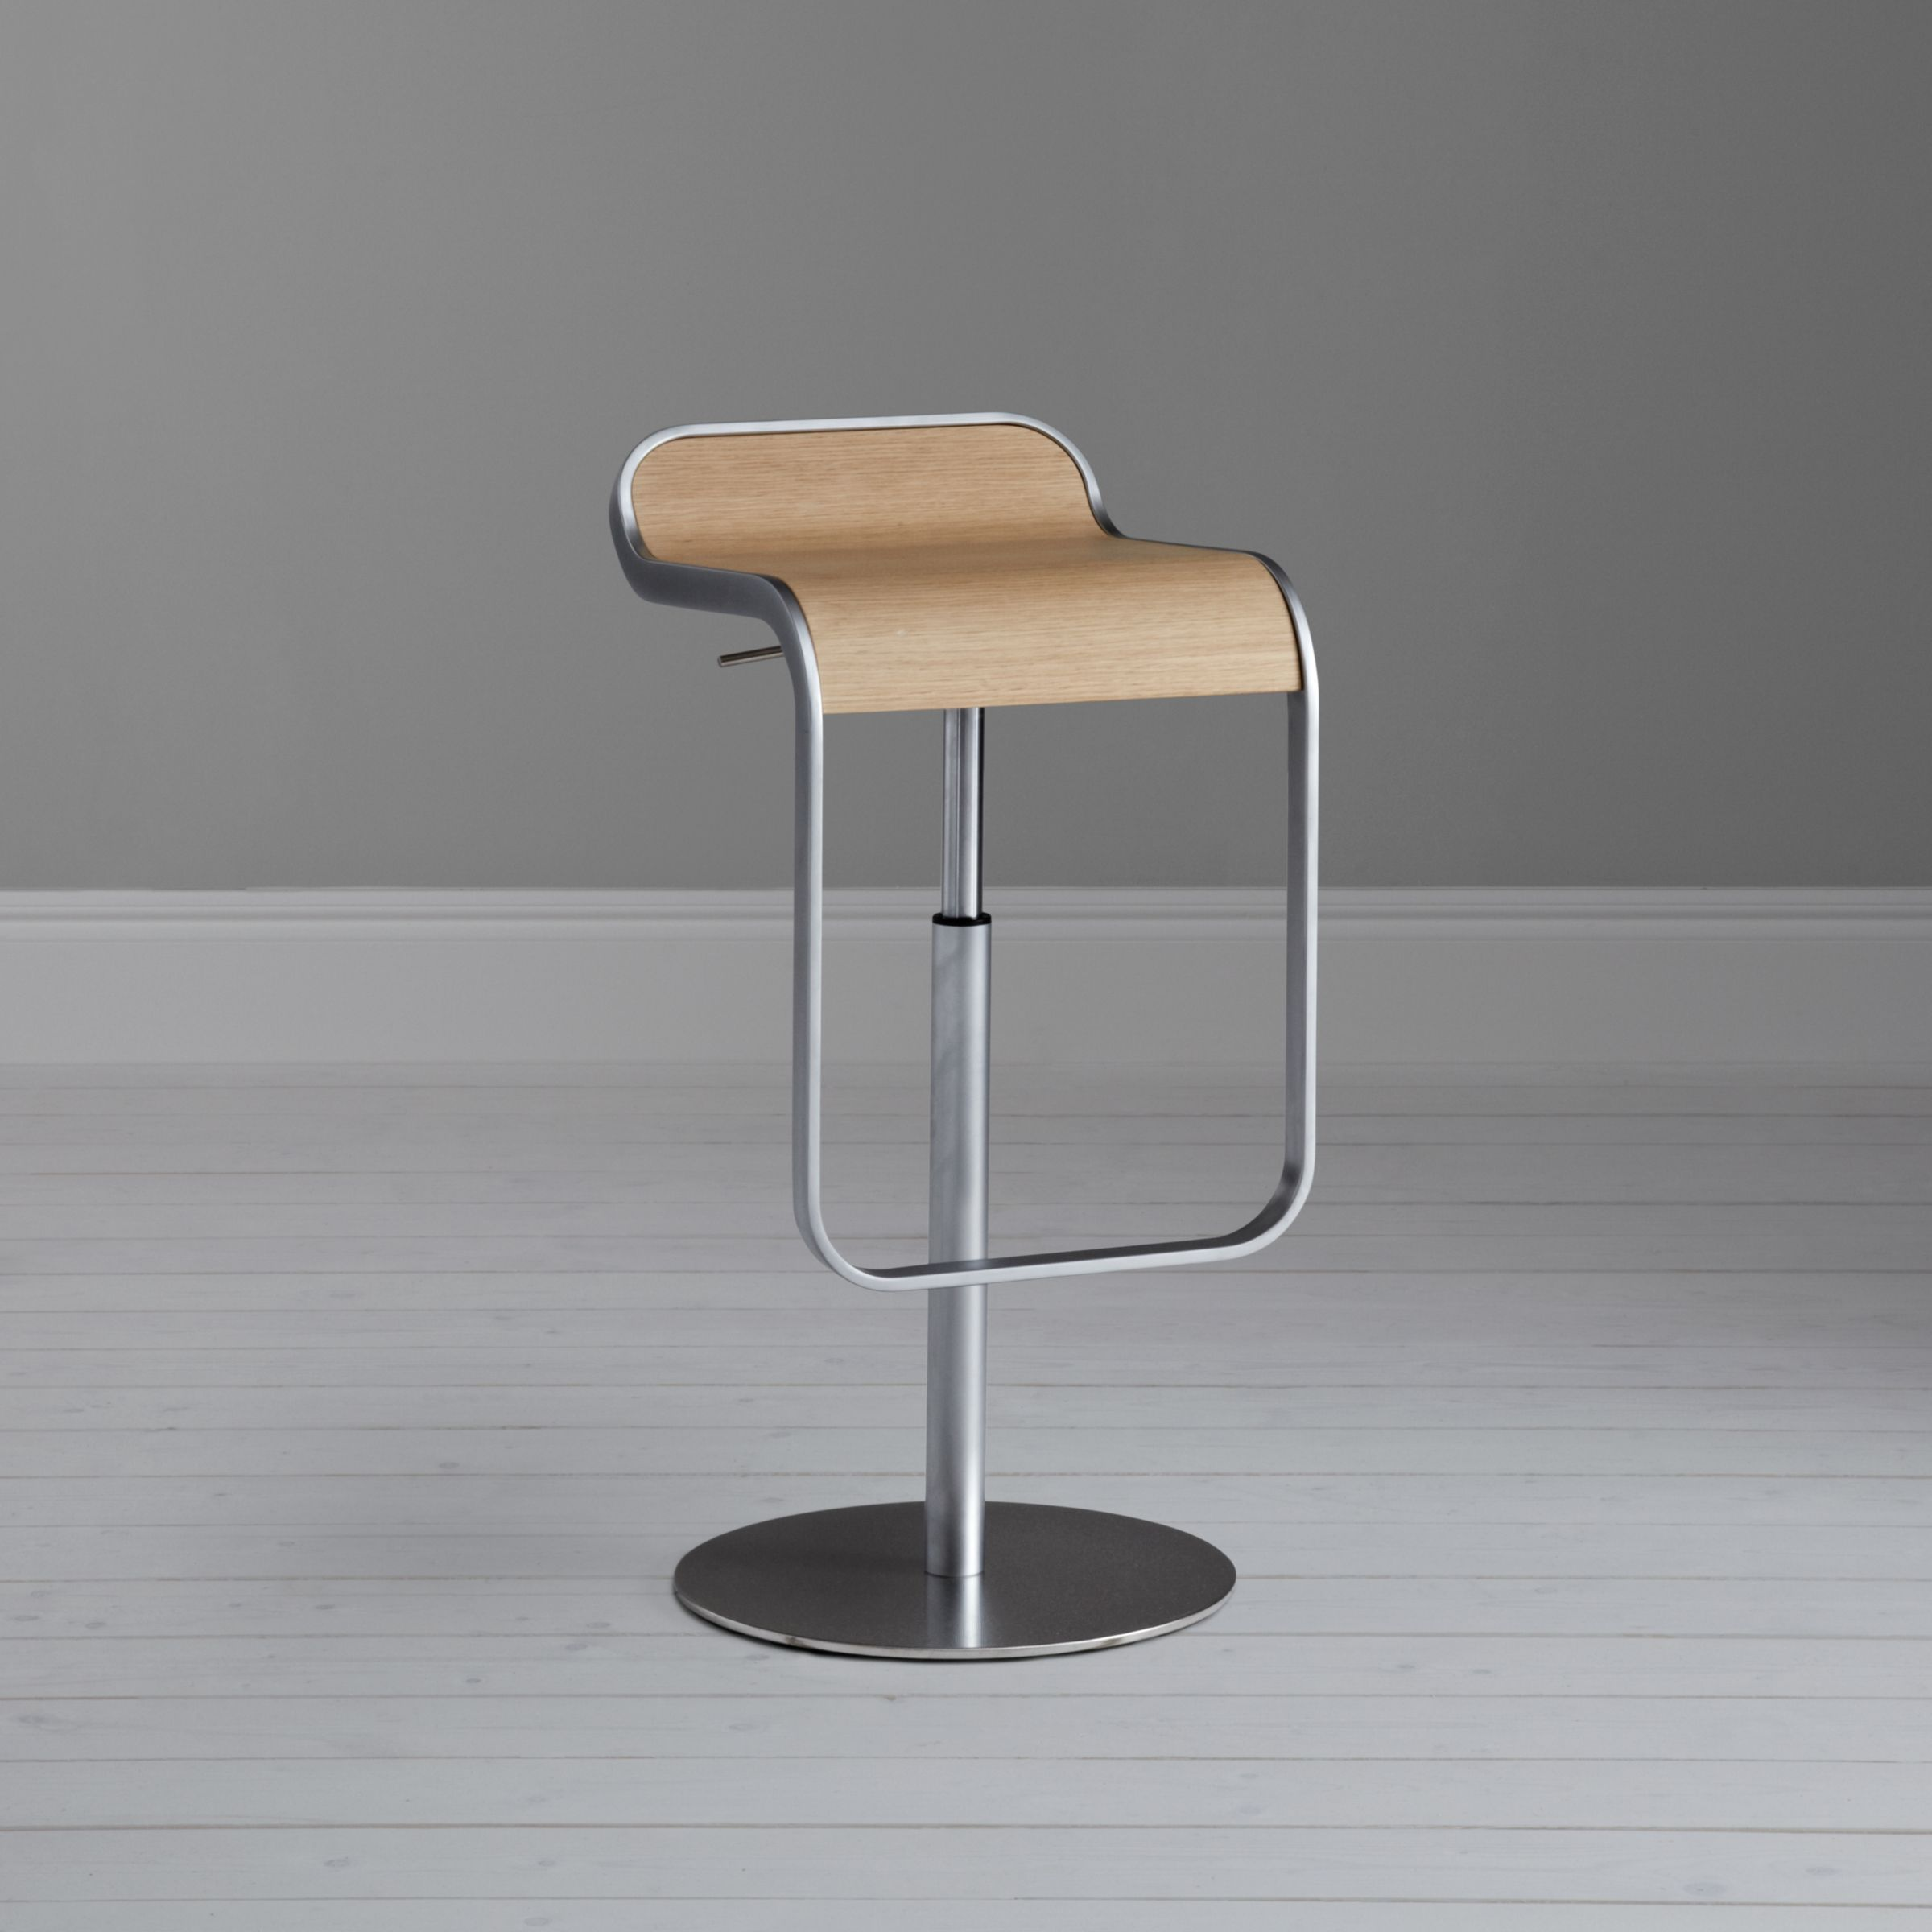 Oak bar stool Shop for cheap Chairs and Save online : 232309868zoom from www.pricechaser.co.uk size 1600 x 1600 jpeg 191kB